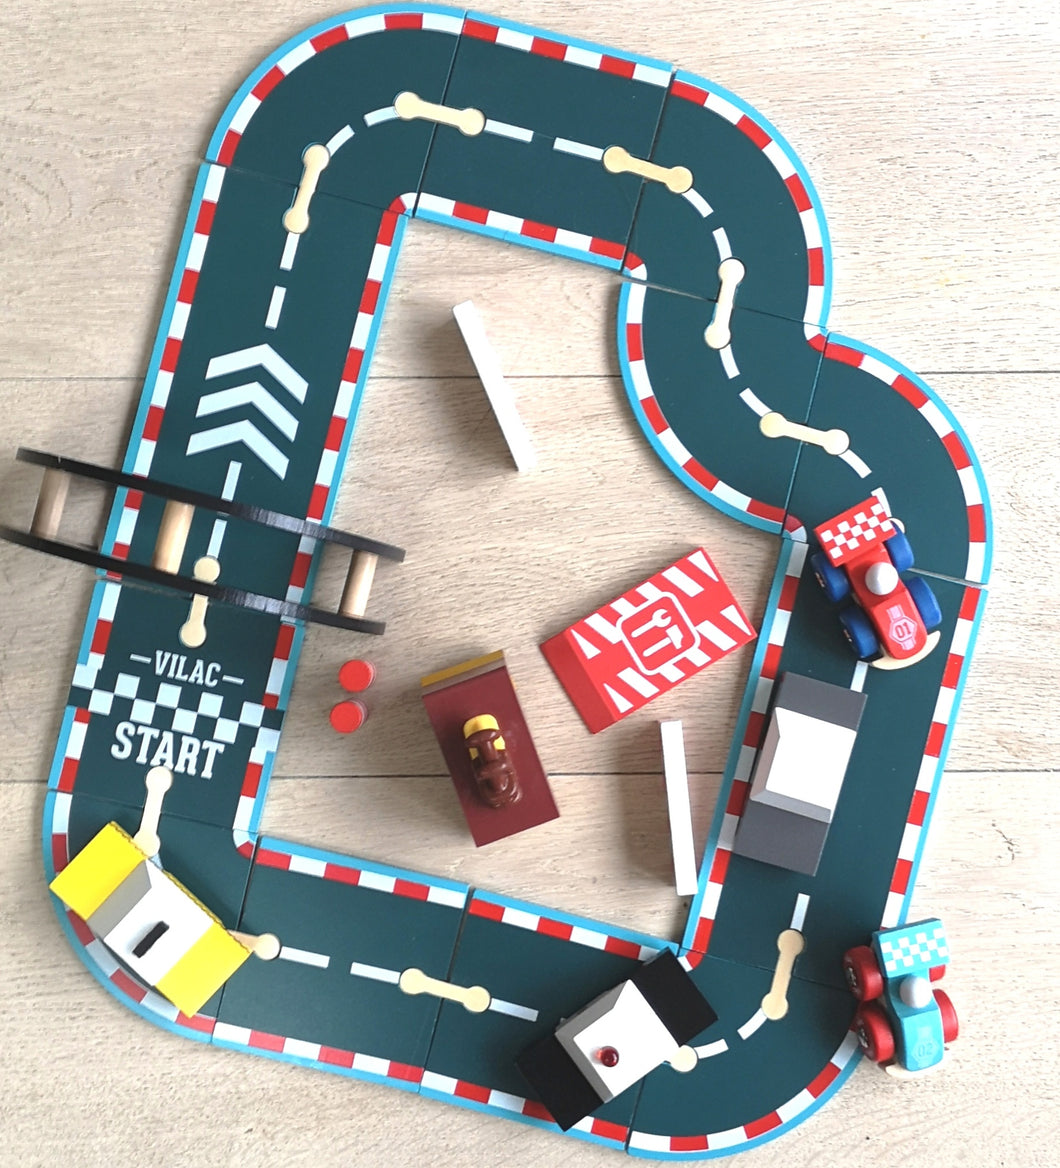 My first car track